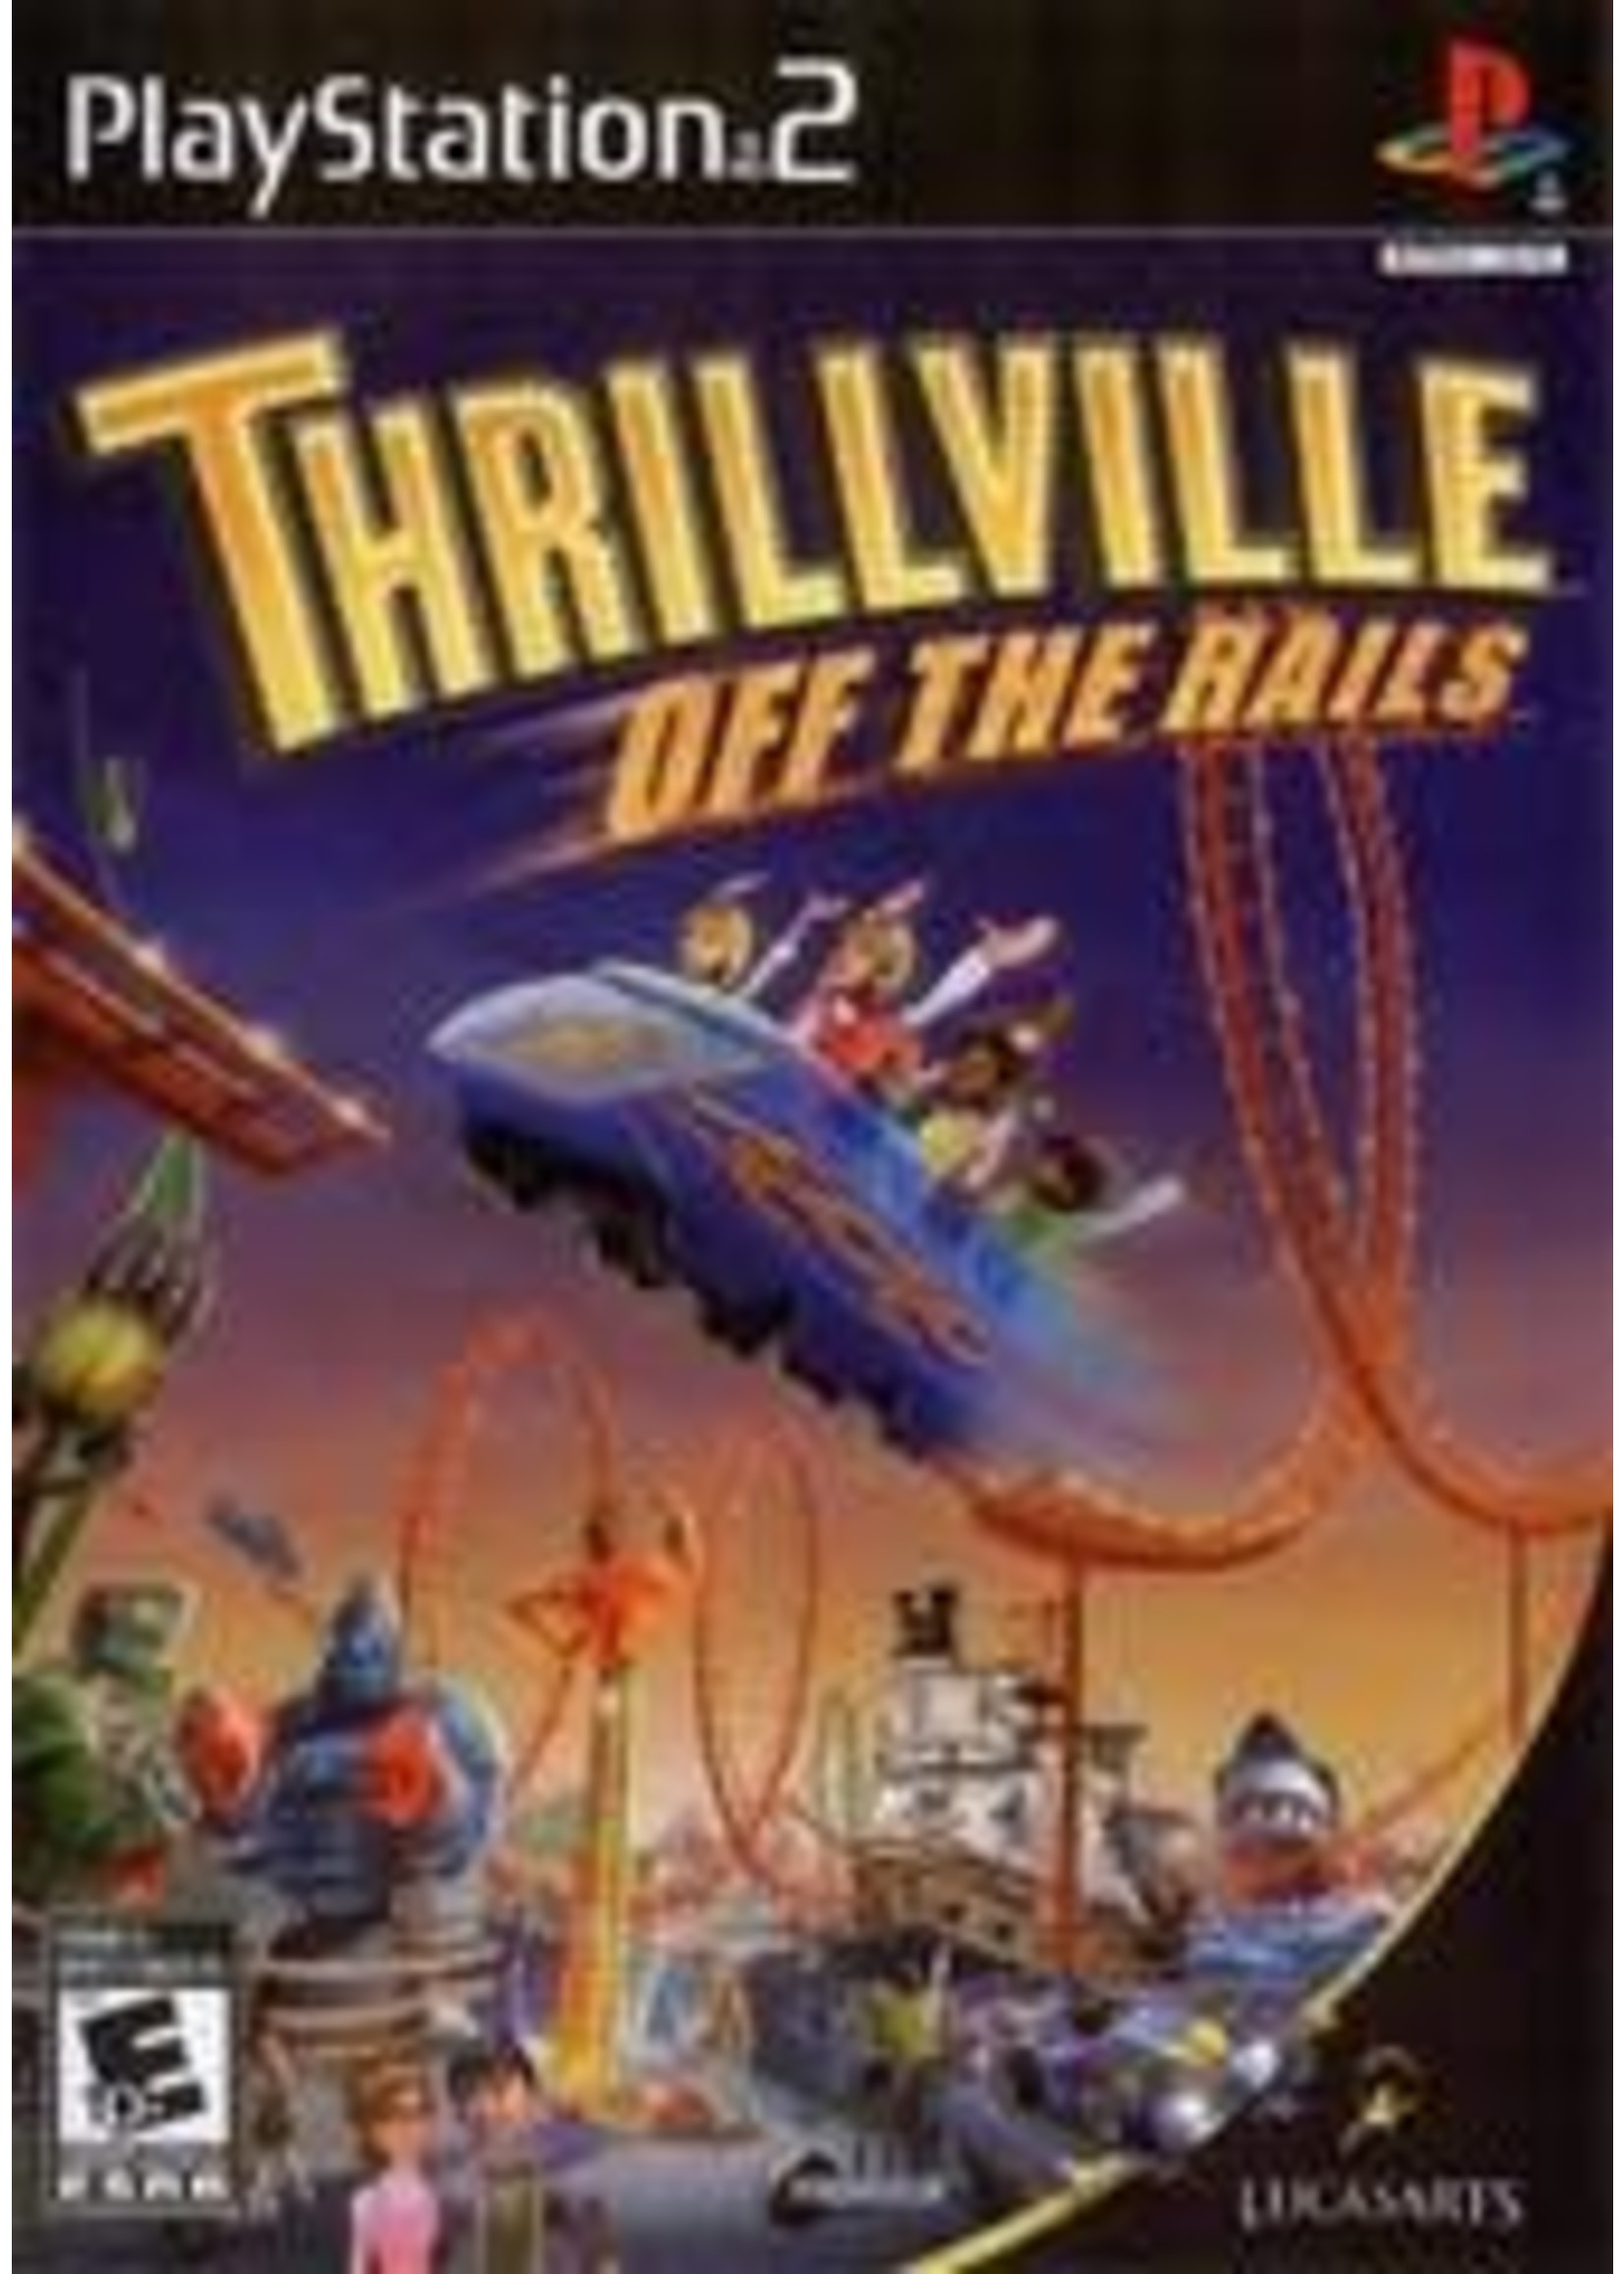 Thrillville Off The Rails Playstation 2